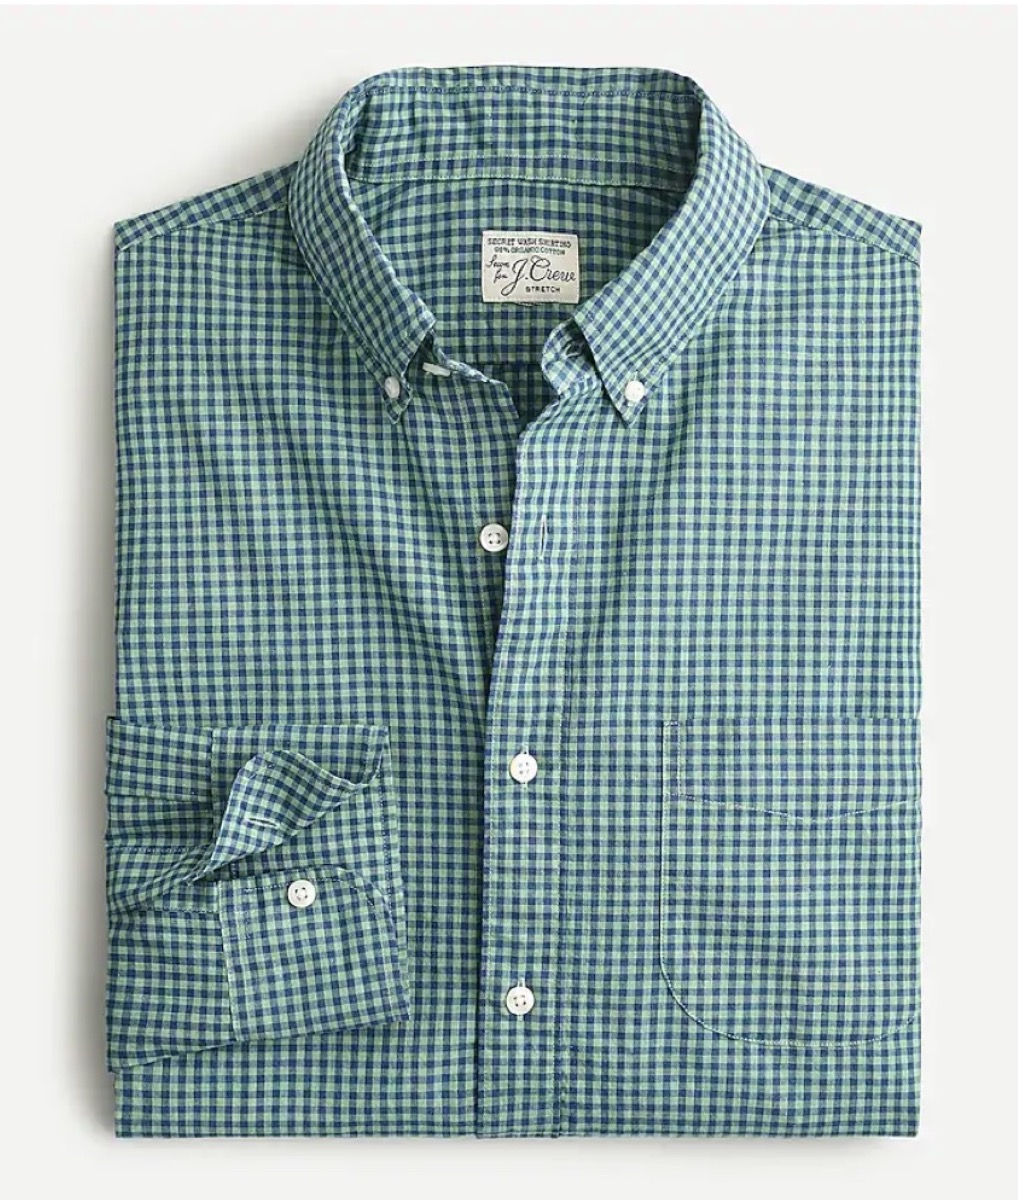 green and white gingham button down shirt